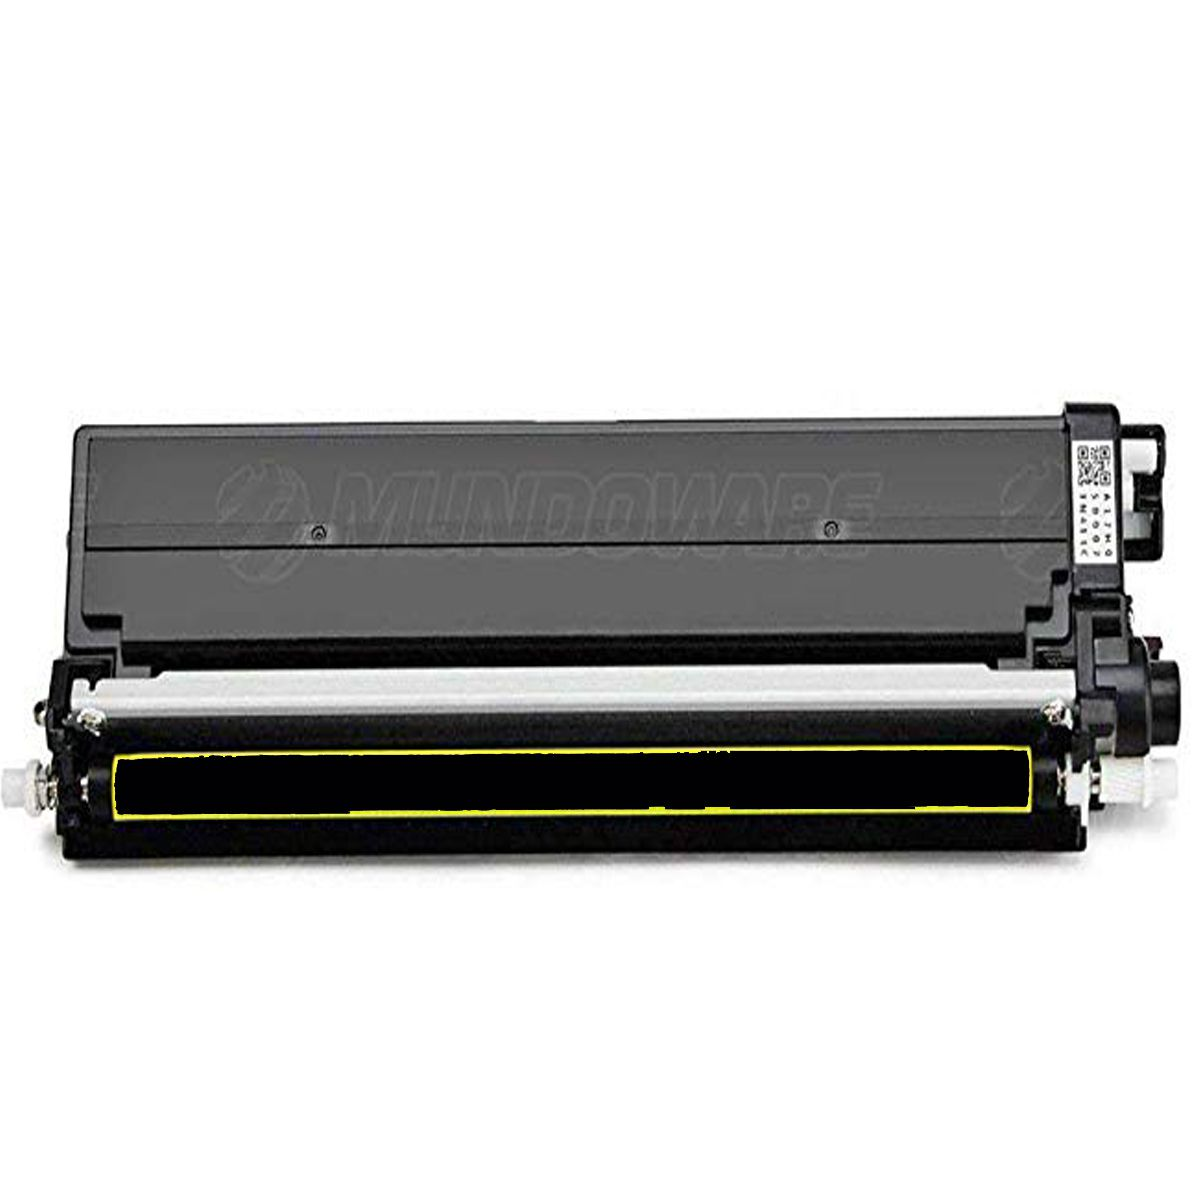 Toner Brother TN419 TN411 TN413 TN421 TN431 TN441 TN451 TN461 TN491 - Preto Compativel